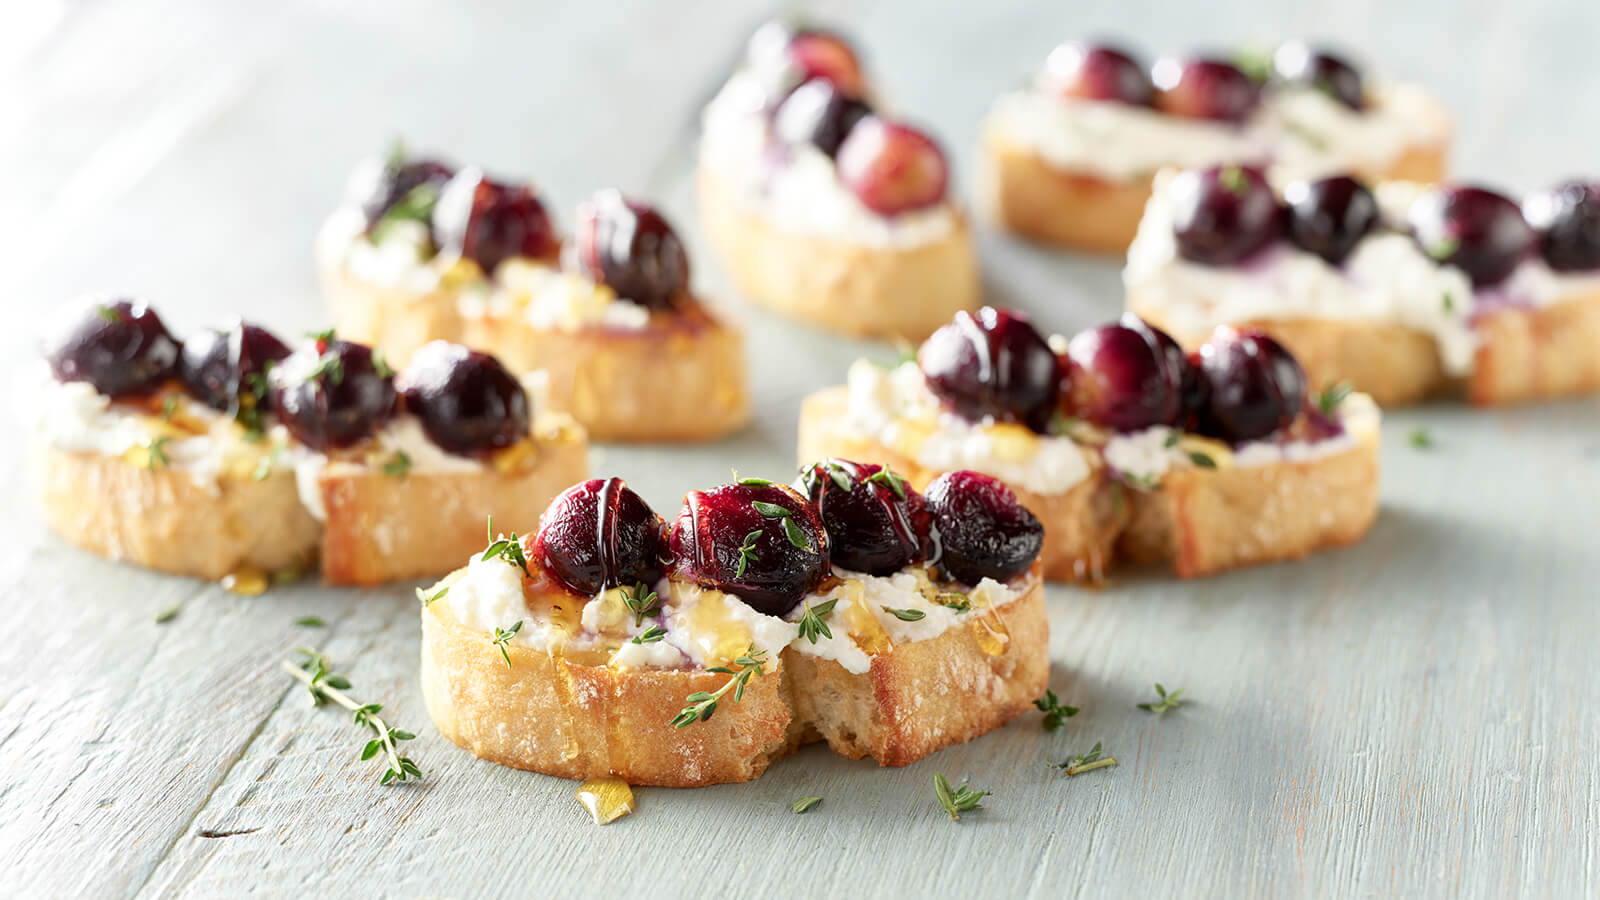 Roasted Grape Crostini with Lemon Ricotta and Thyme